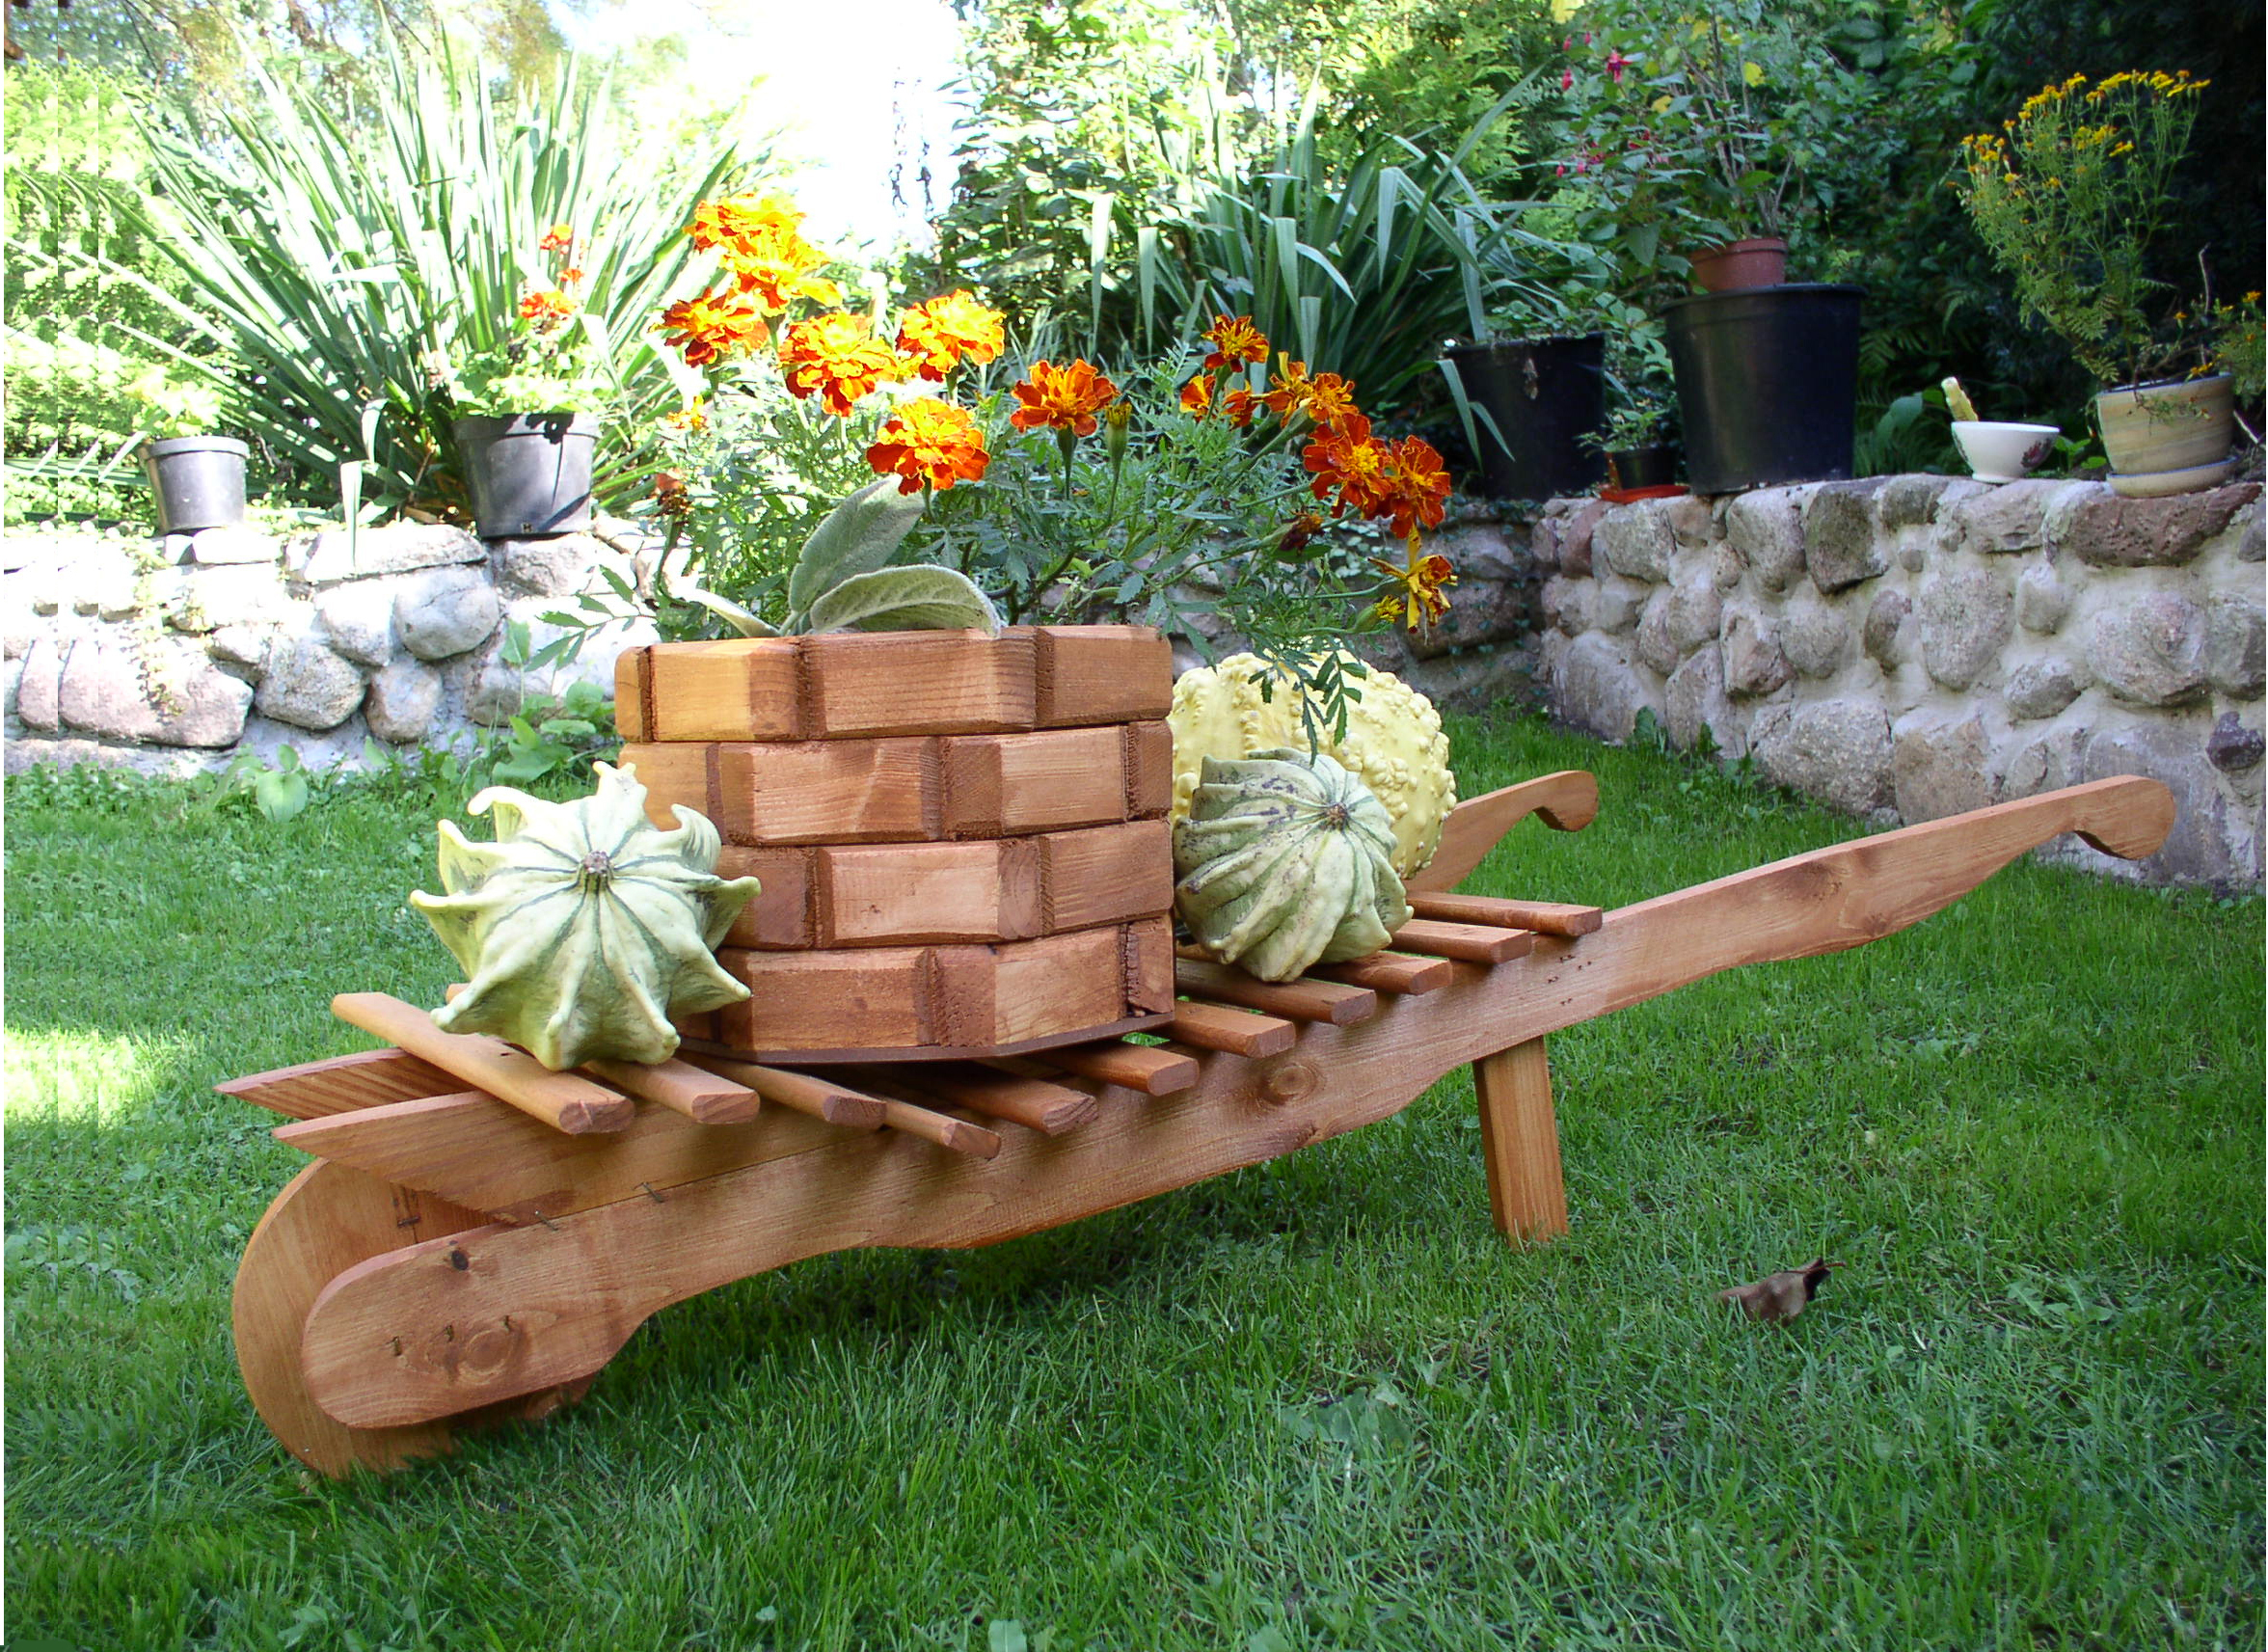 Other wooden products garden artisans for Wooden garden decorations